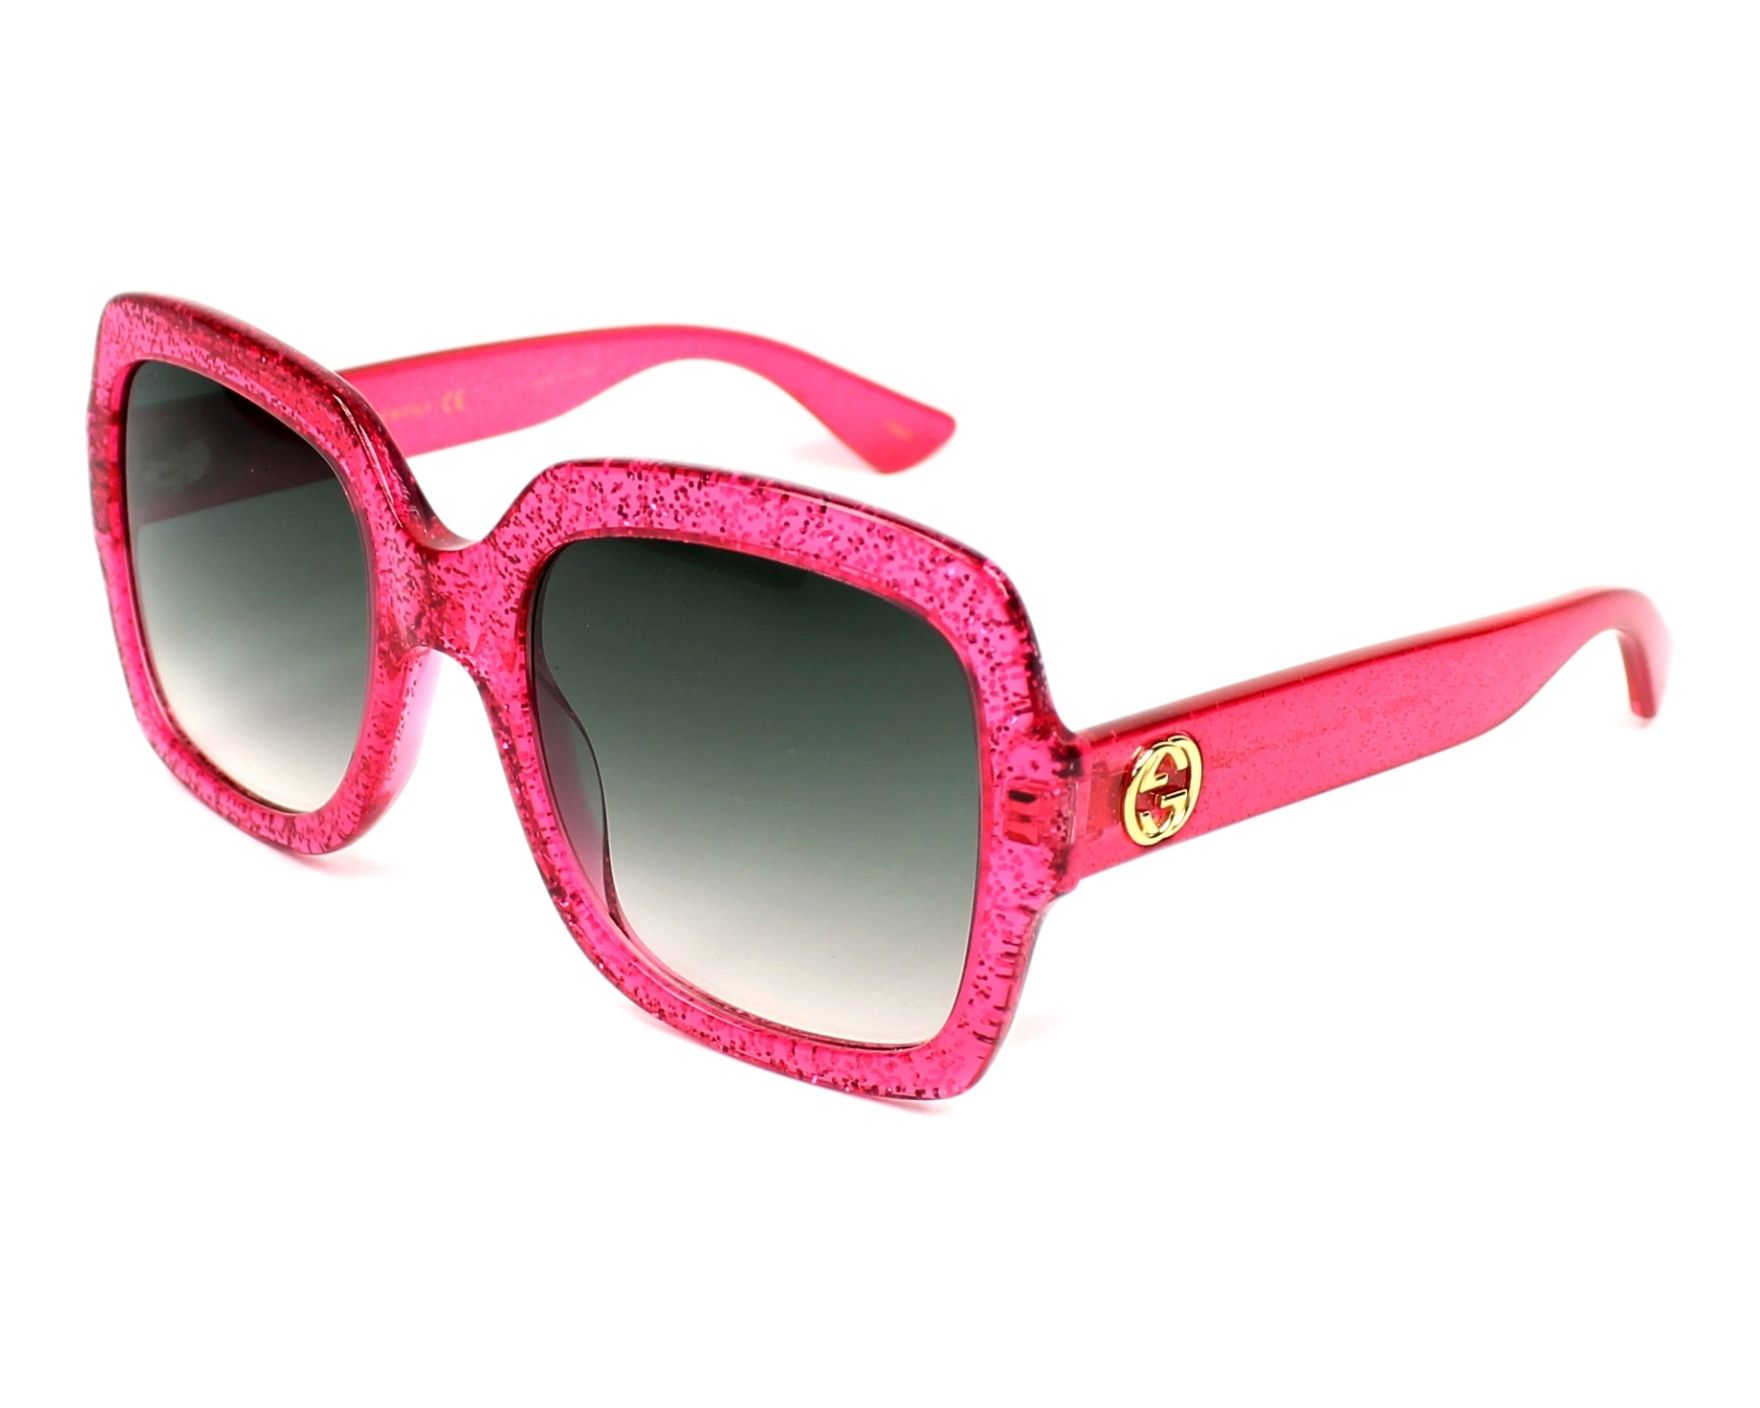 98a40aa429 Sunglasses Gucci GG-0036-S 007 54-22 Pink profile view